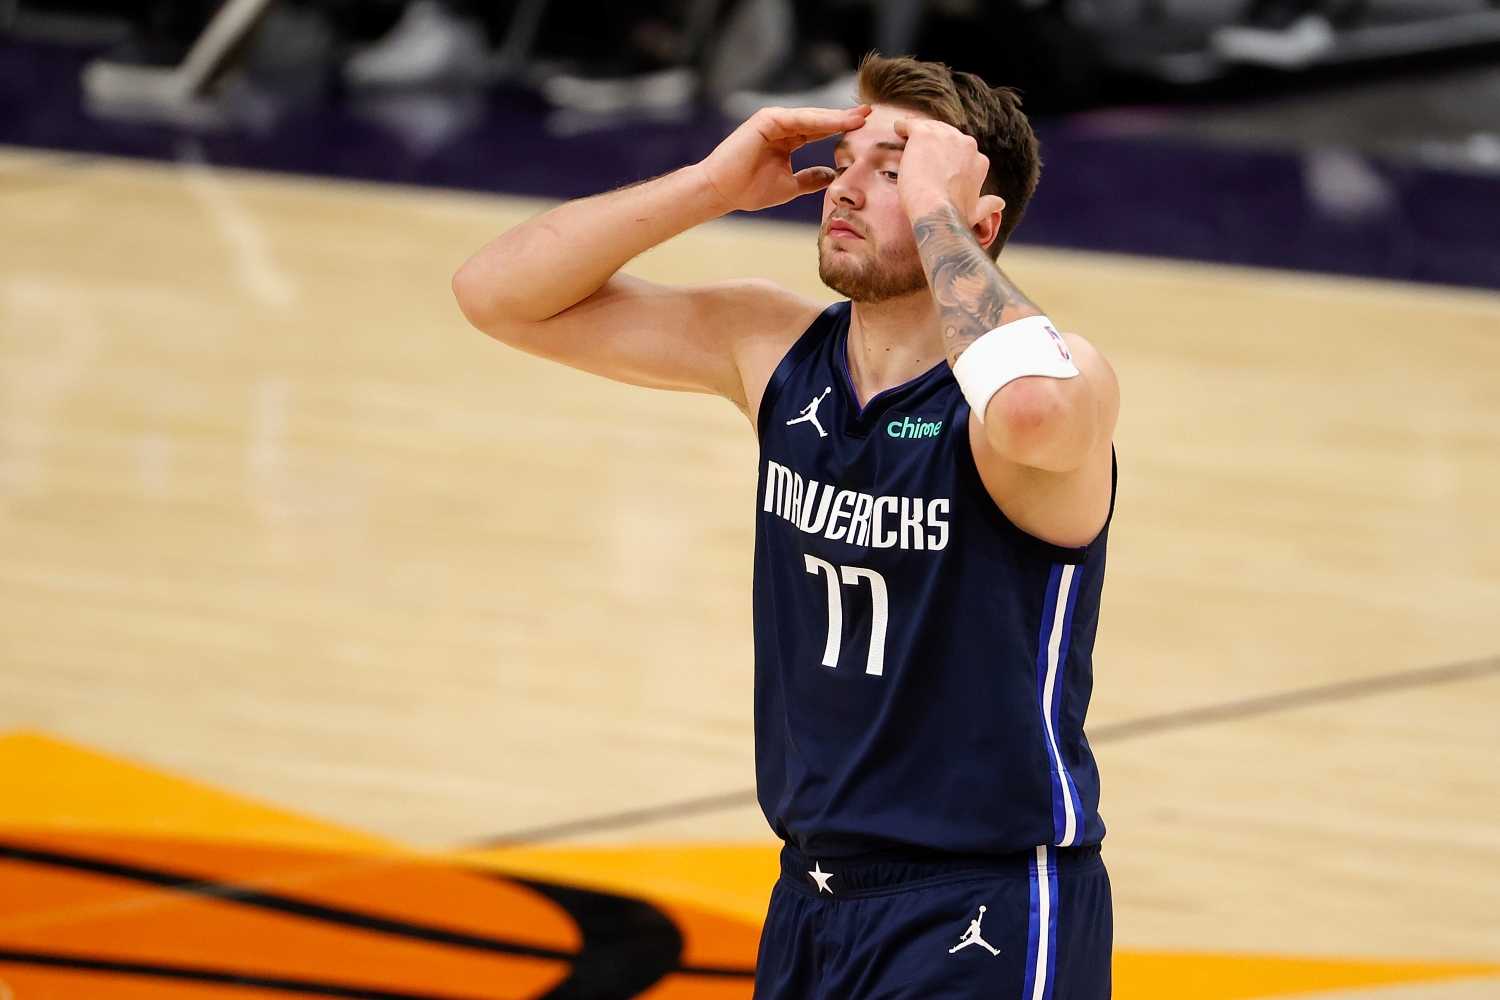 Luka Doncic of the Dallas Mavericks reacts to a foul call during the second half of the NBA game against the Phoenix Suns.